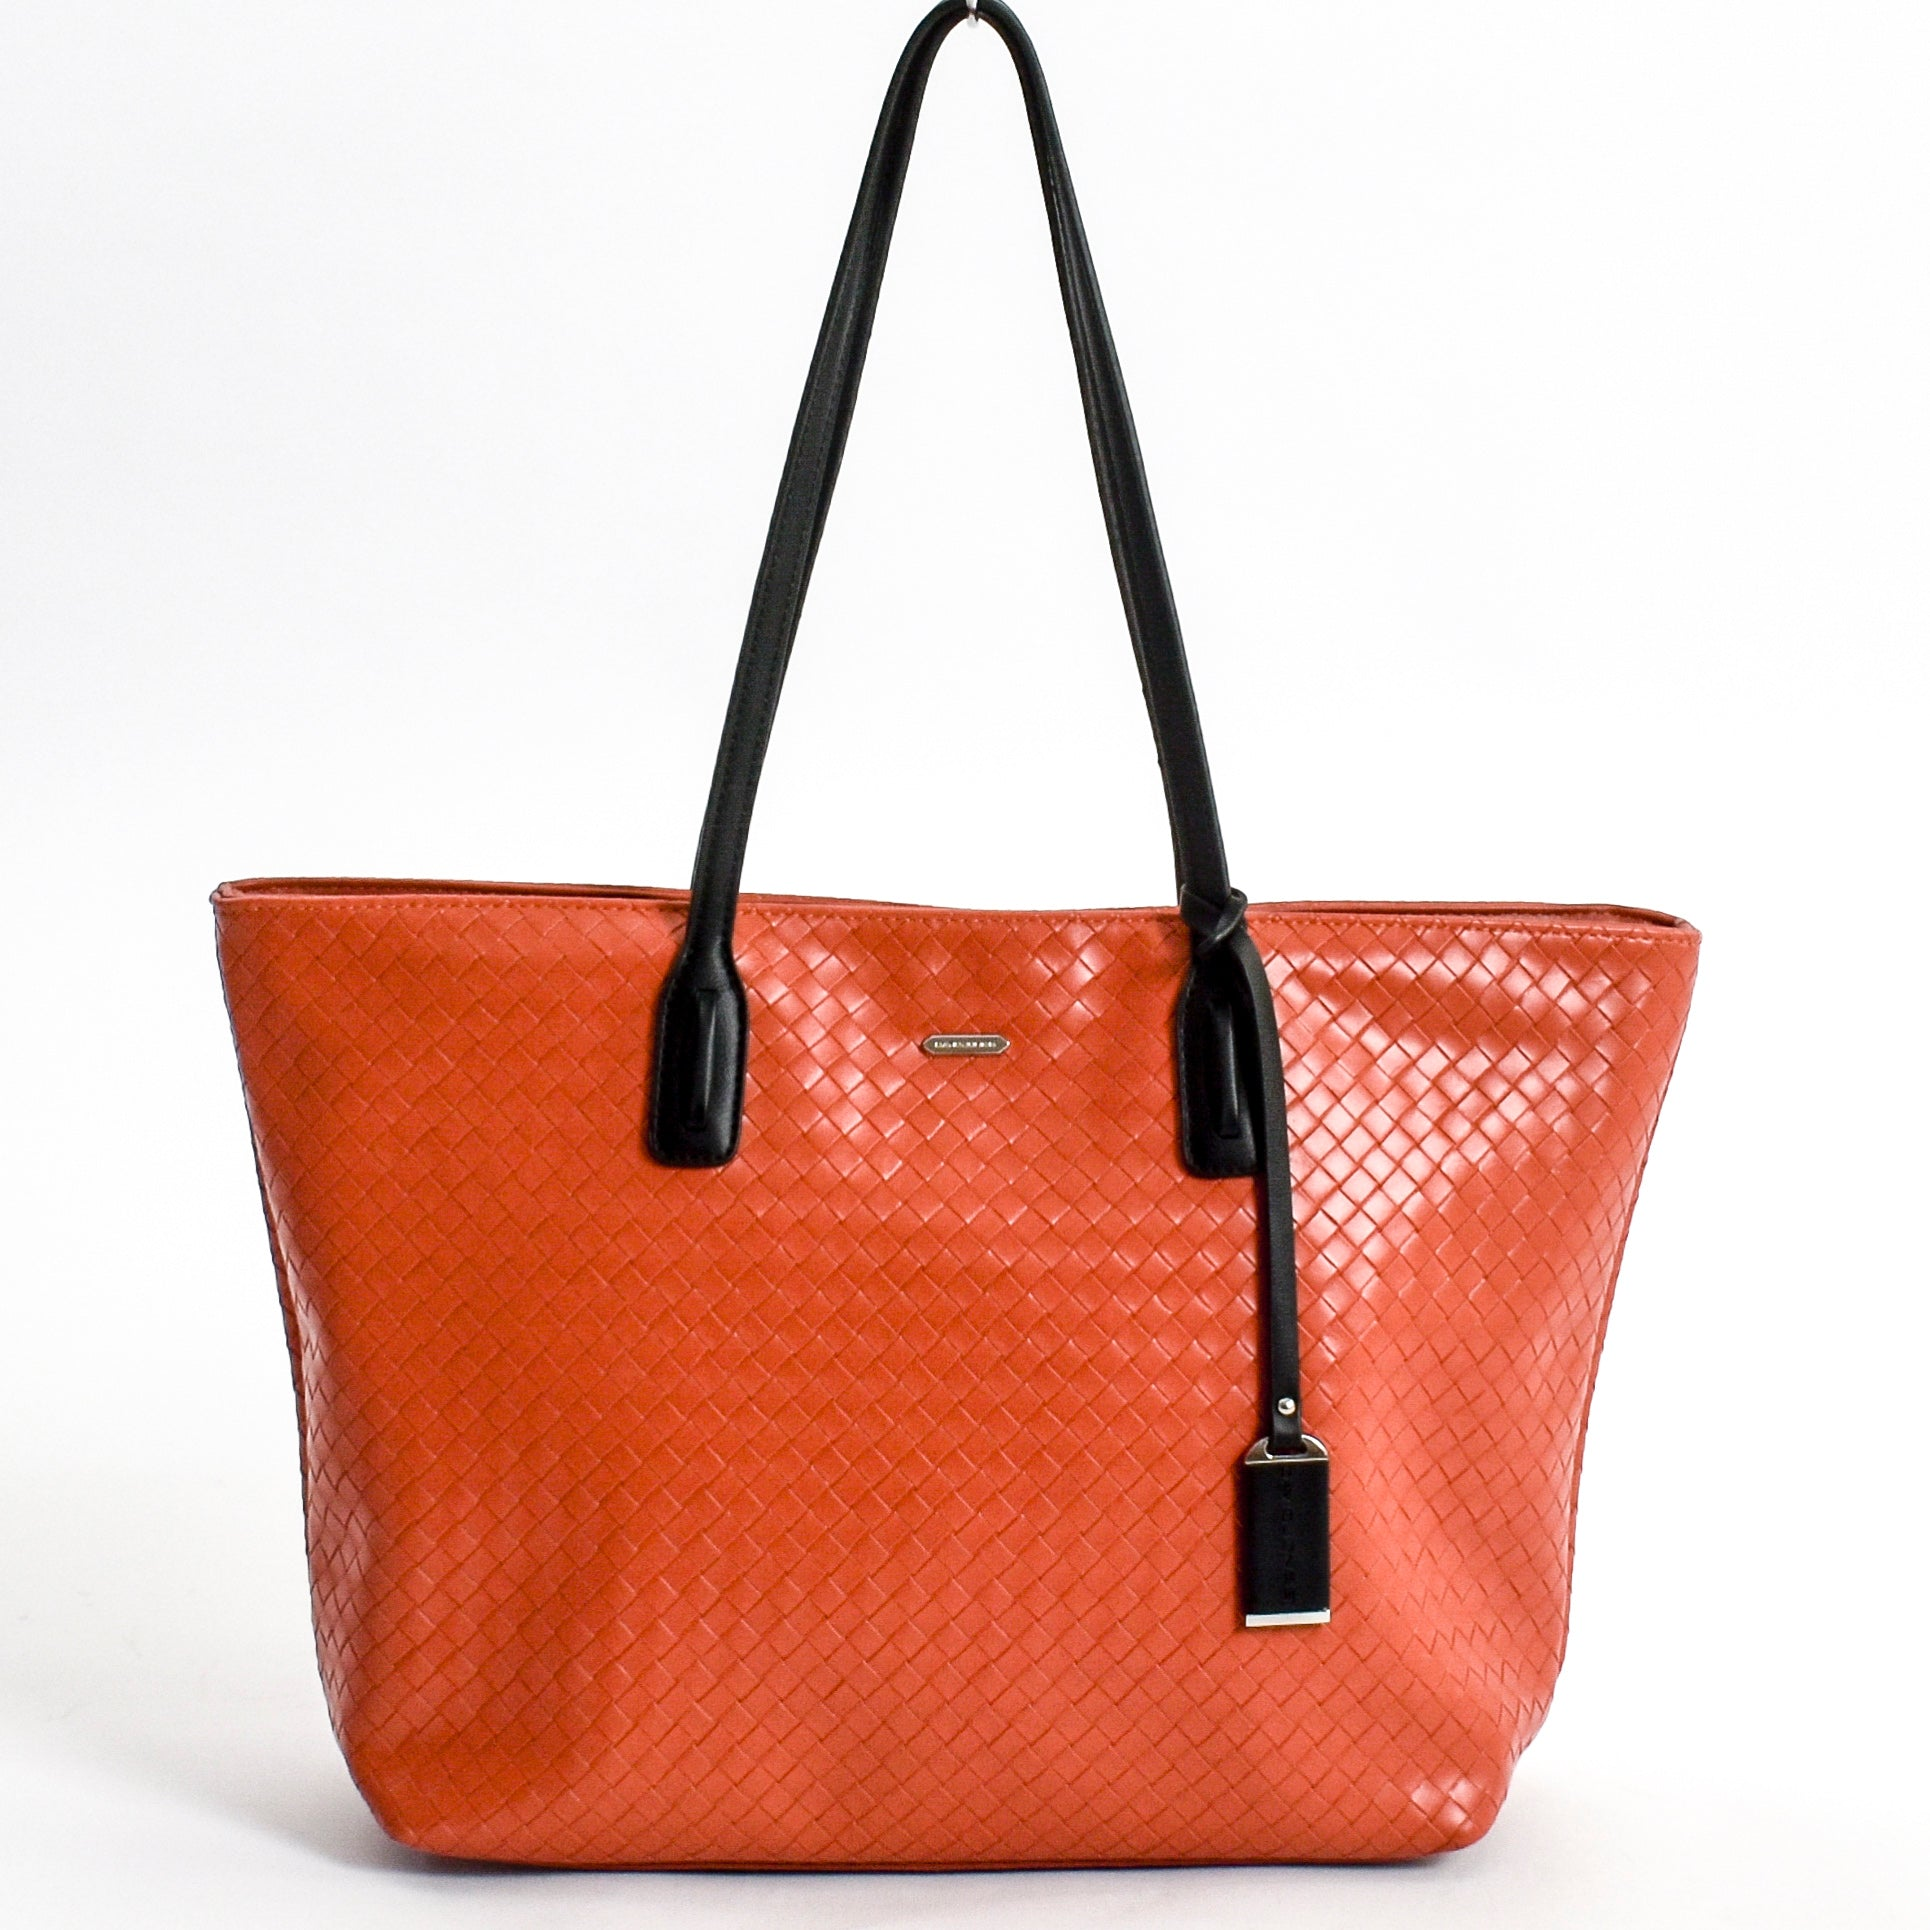 Cartera David Jones Tote Bag Woven - mod. 6019